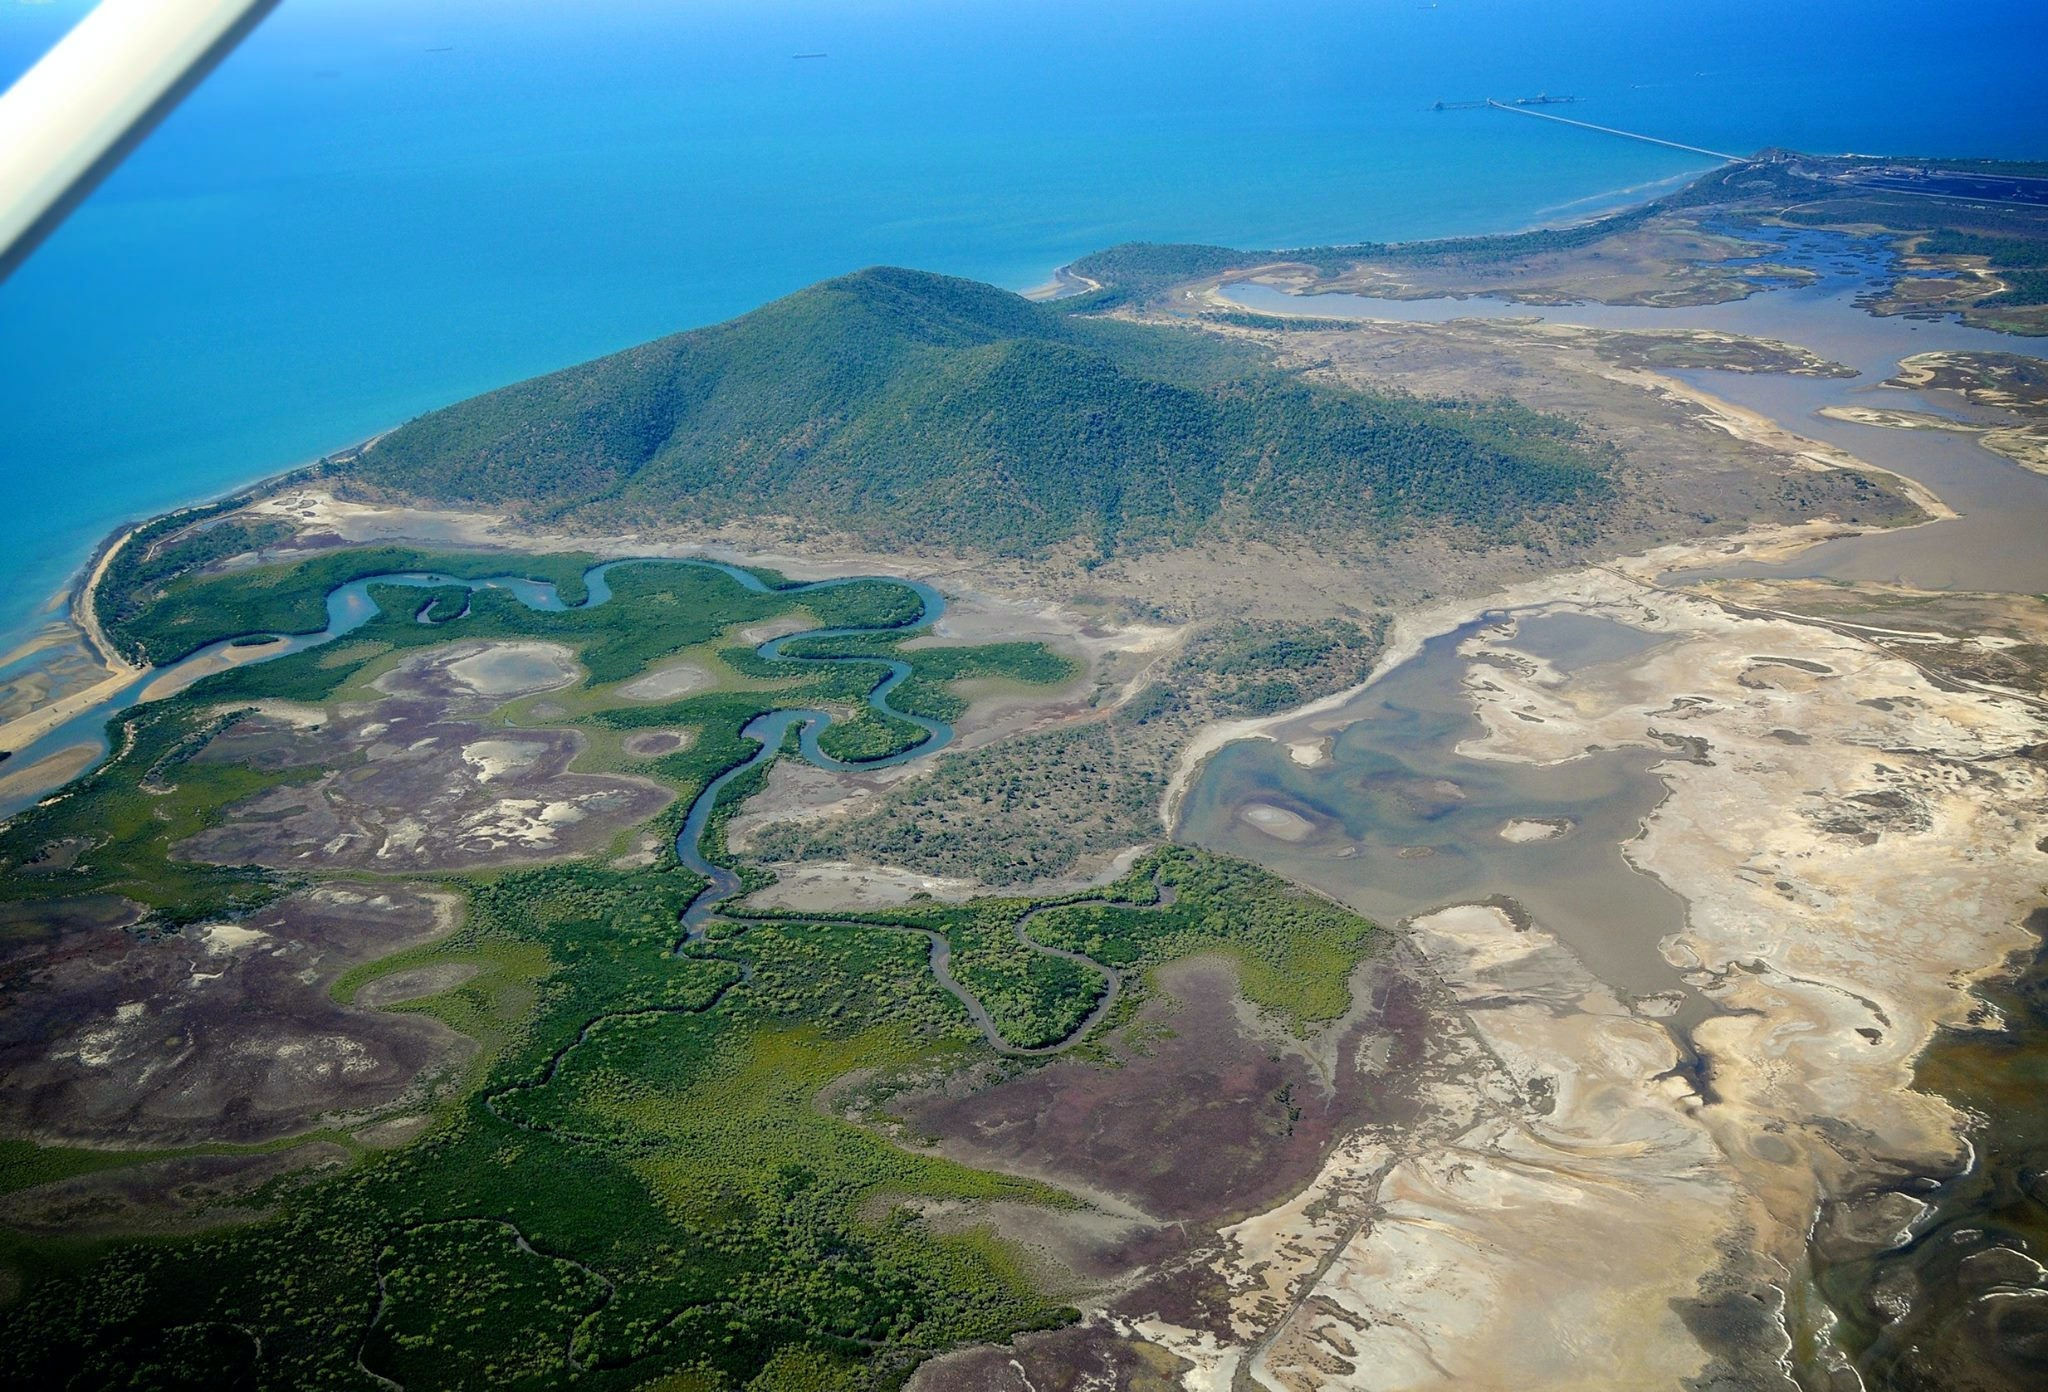 Latest twist in the Adani saga reveals shortcomings in environmental approvals